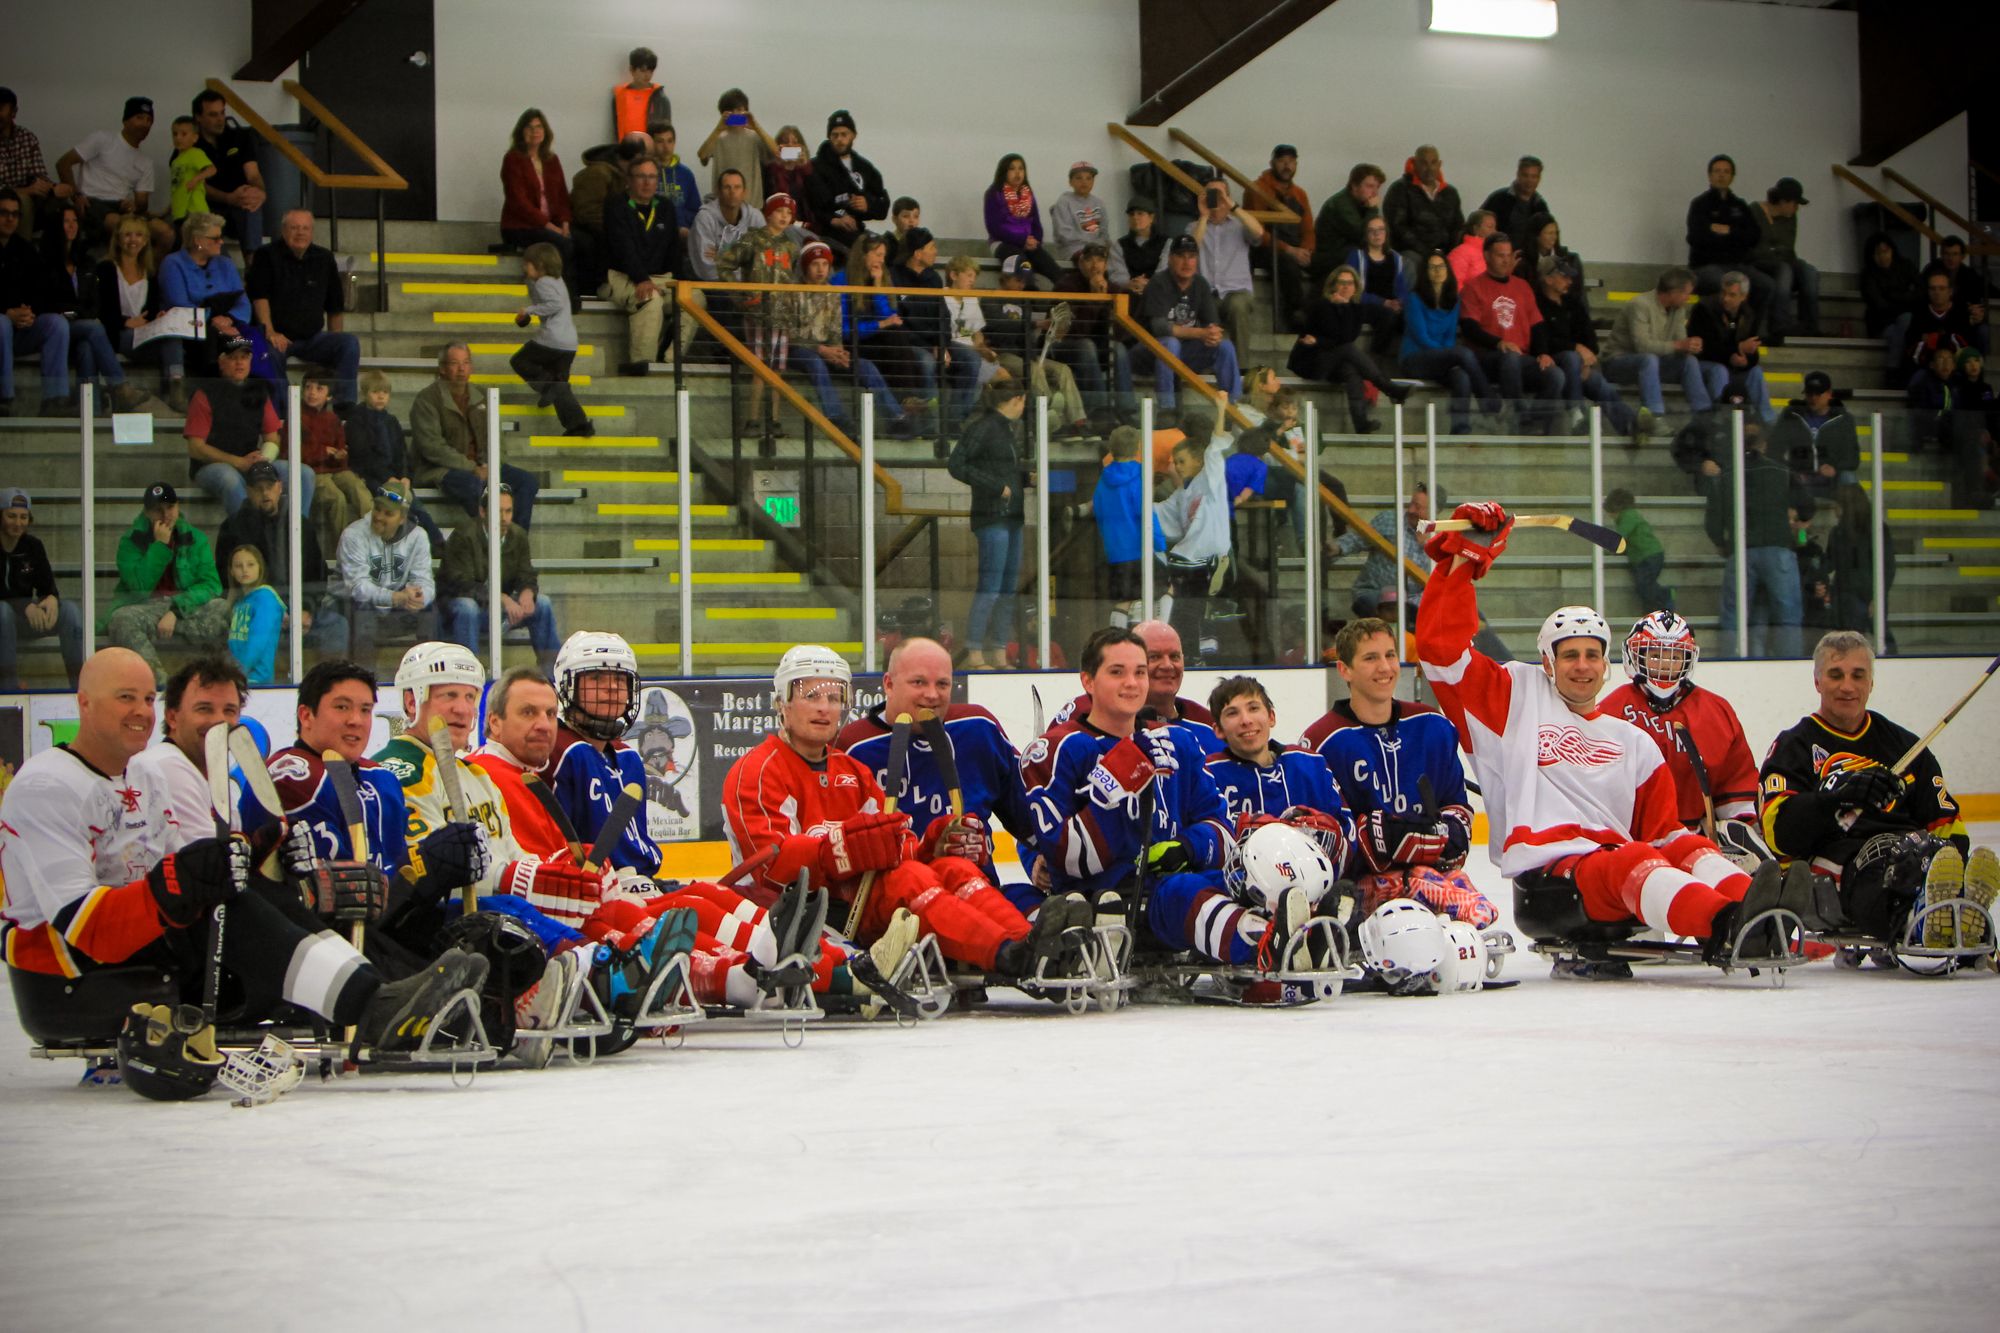 Sledhockey Groupshot.jpg